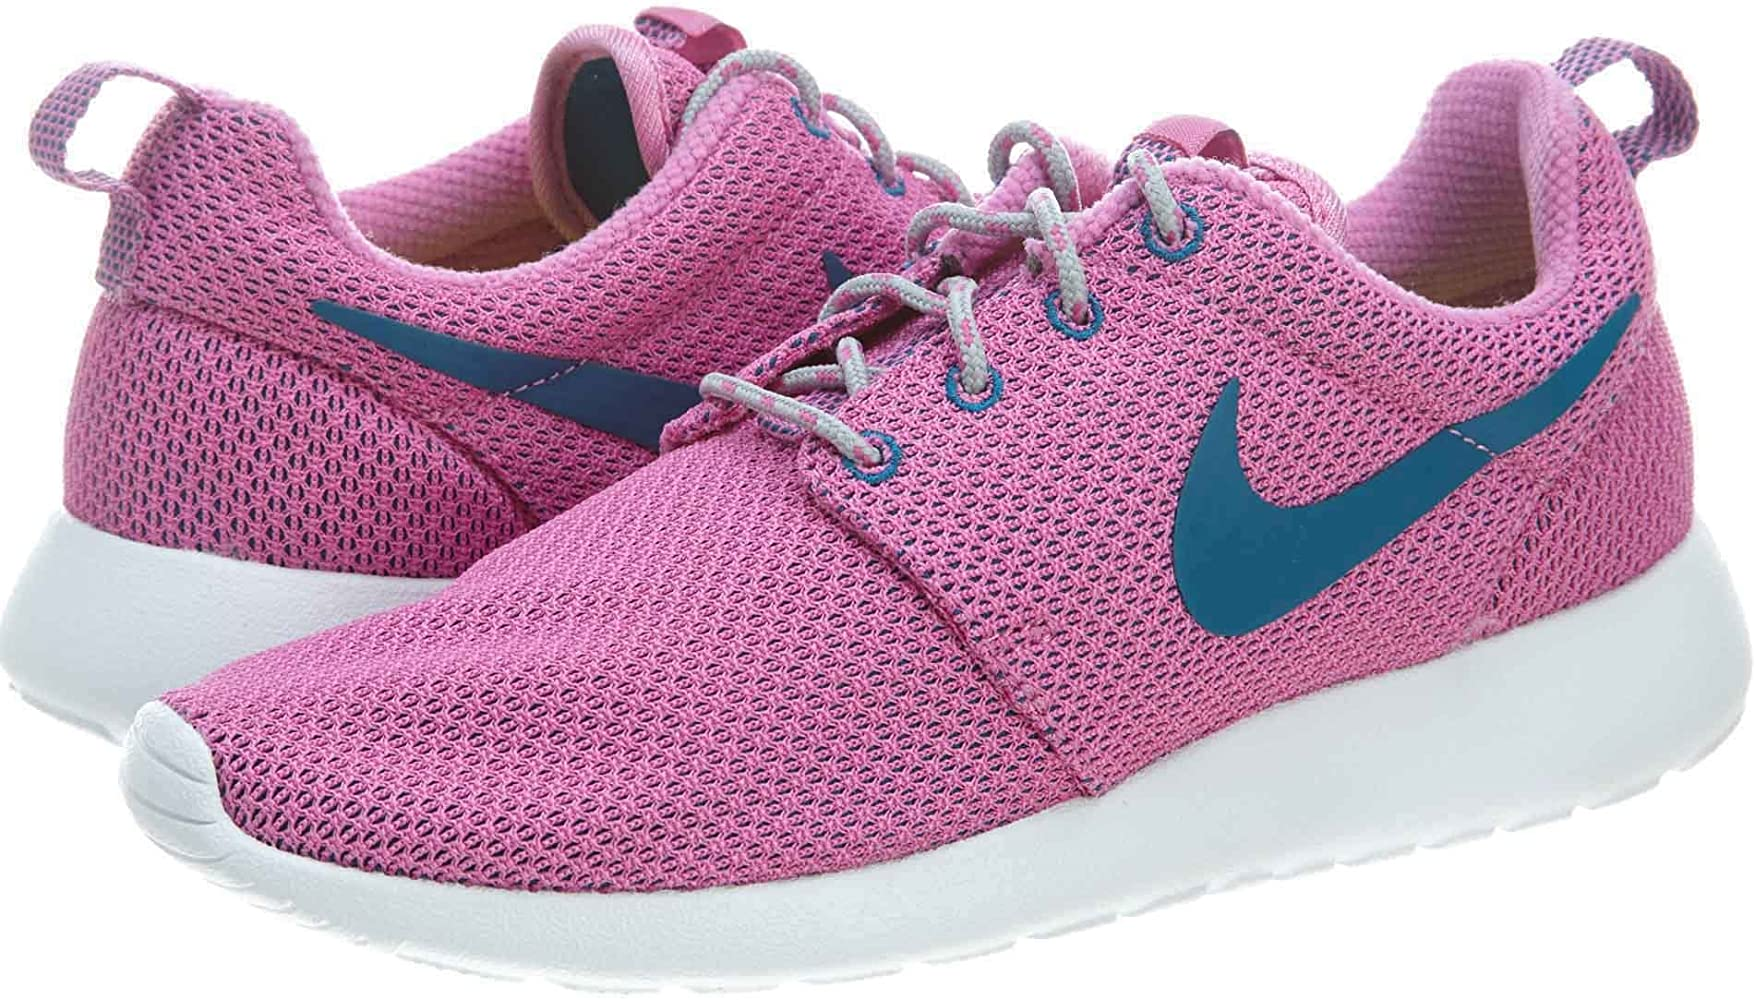 run shoes best sneakers retail prices Nike Rosherun Sneaker Wms: Amazon.co.uk: Shoes & Bags